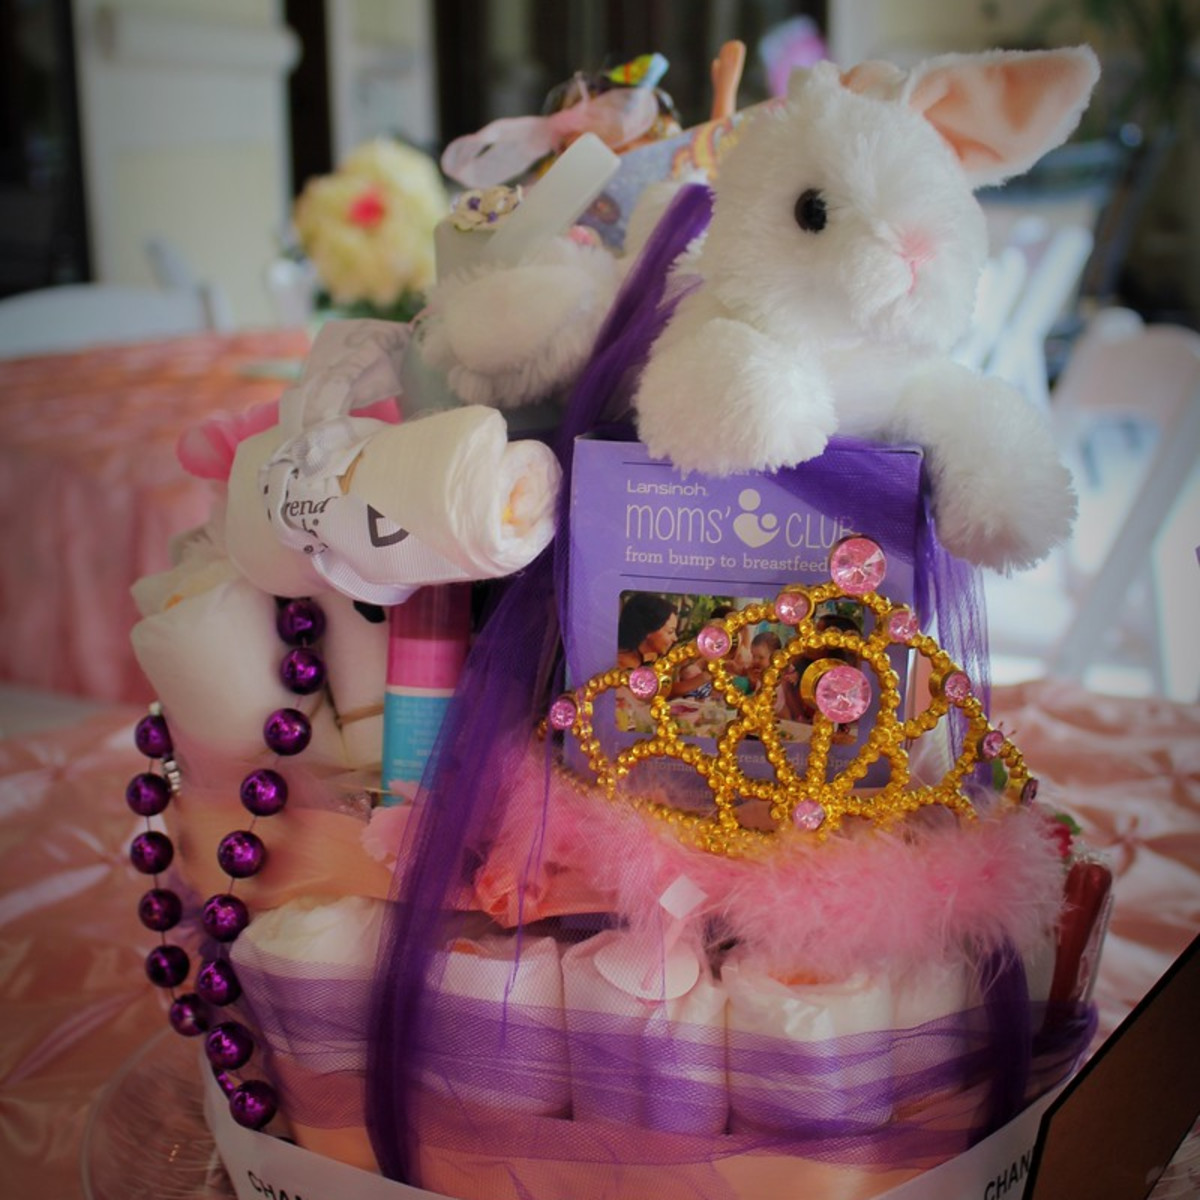 Erica Rose Baby Shower, June 2016, Diaper cake